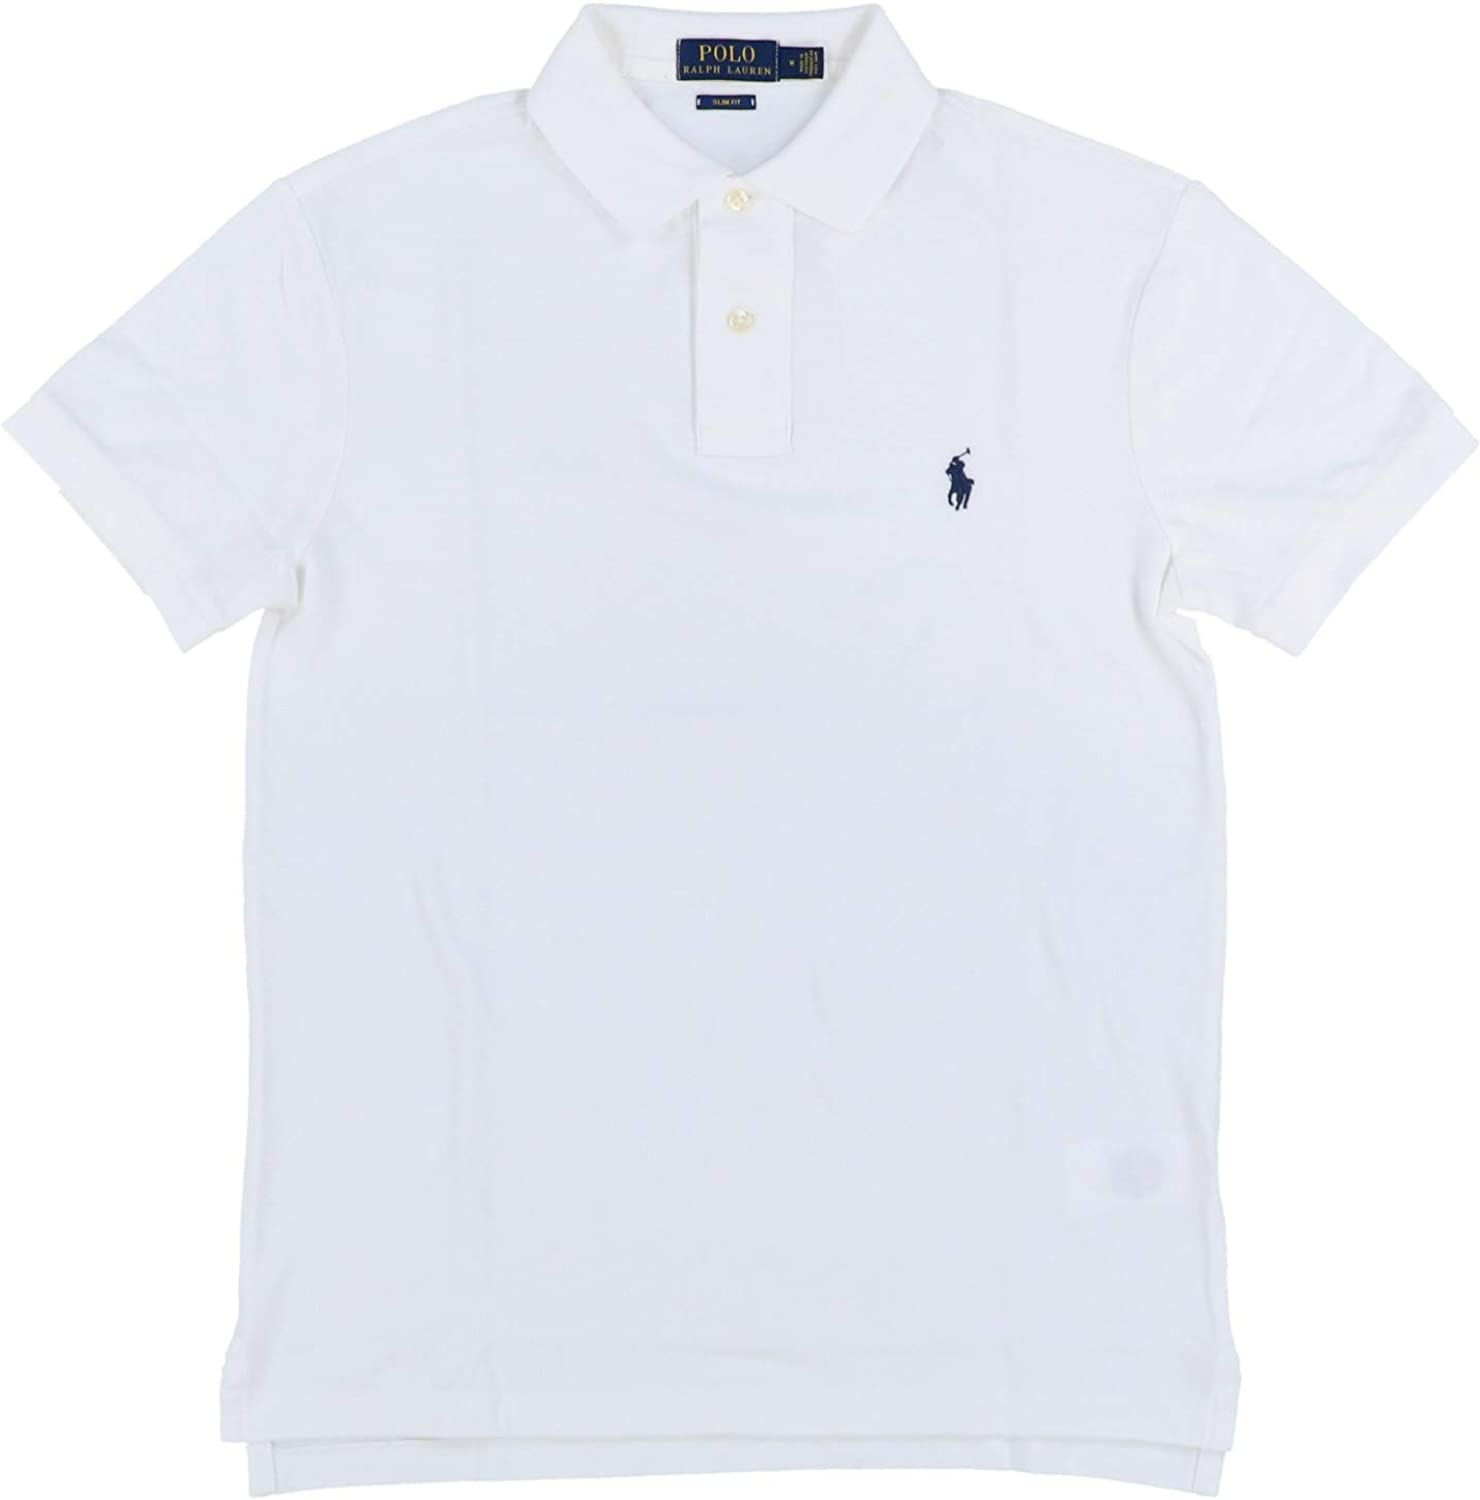 Polo Ralph Lauren, polo slim fit piqué de hombre (Medium, Blanco ...